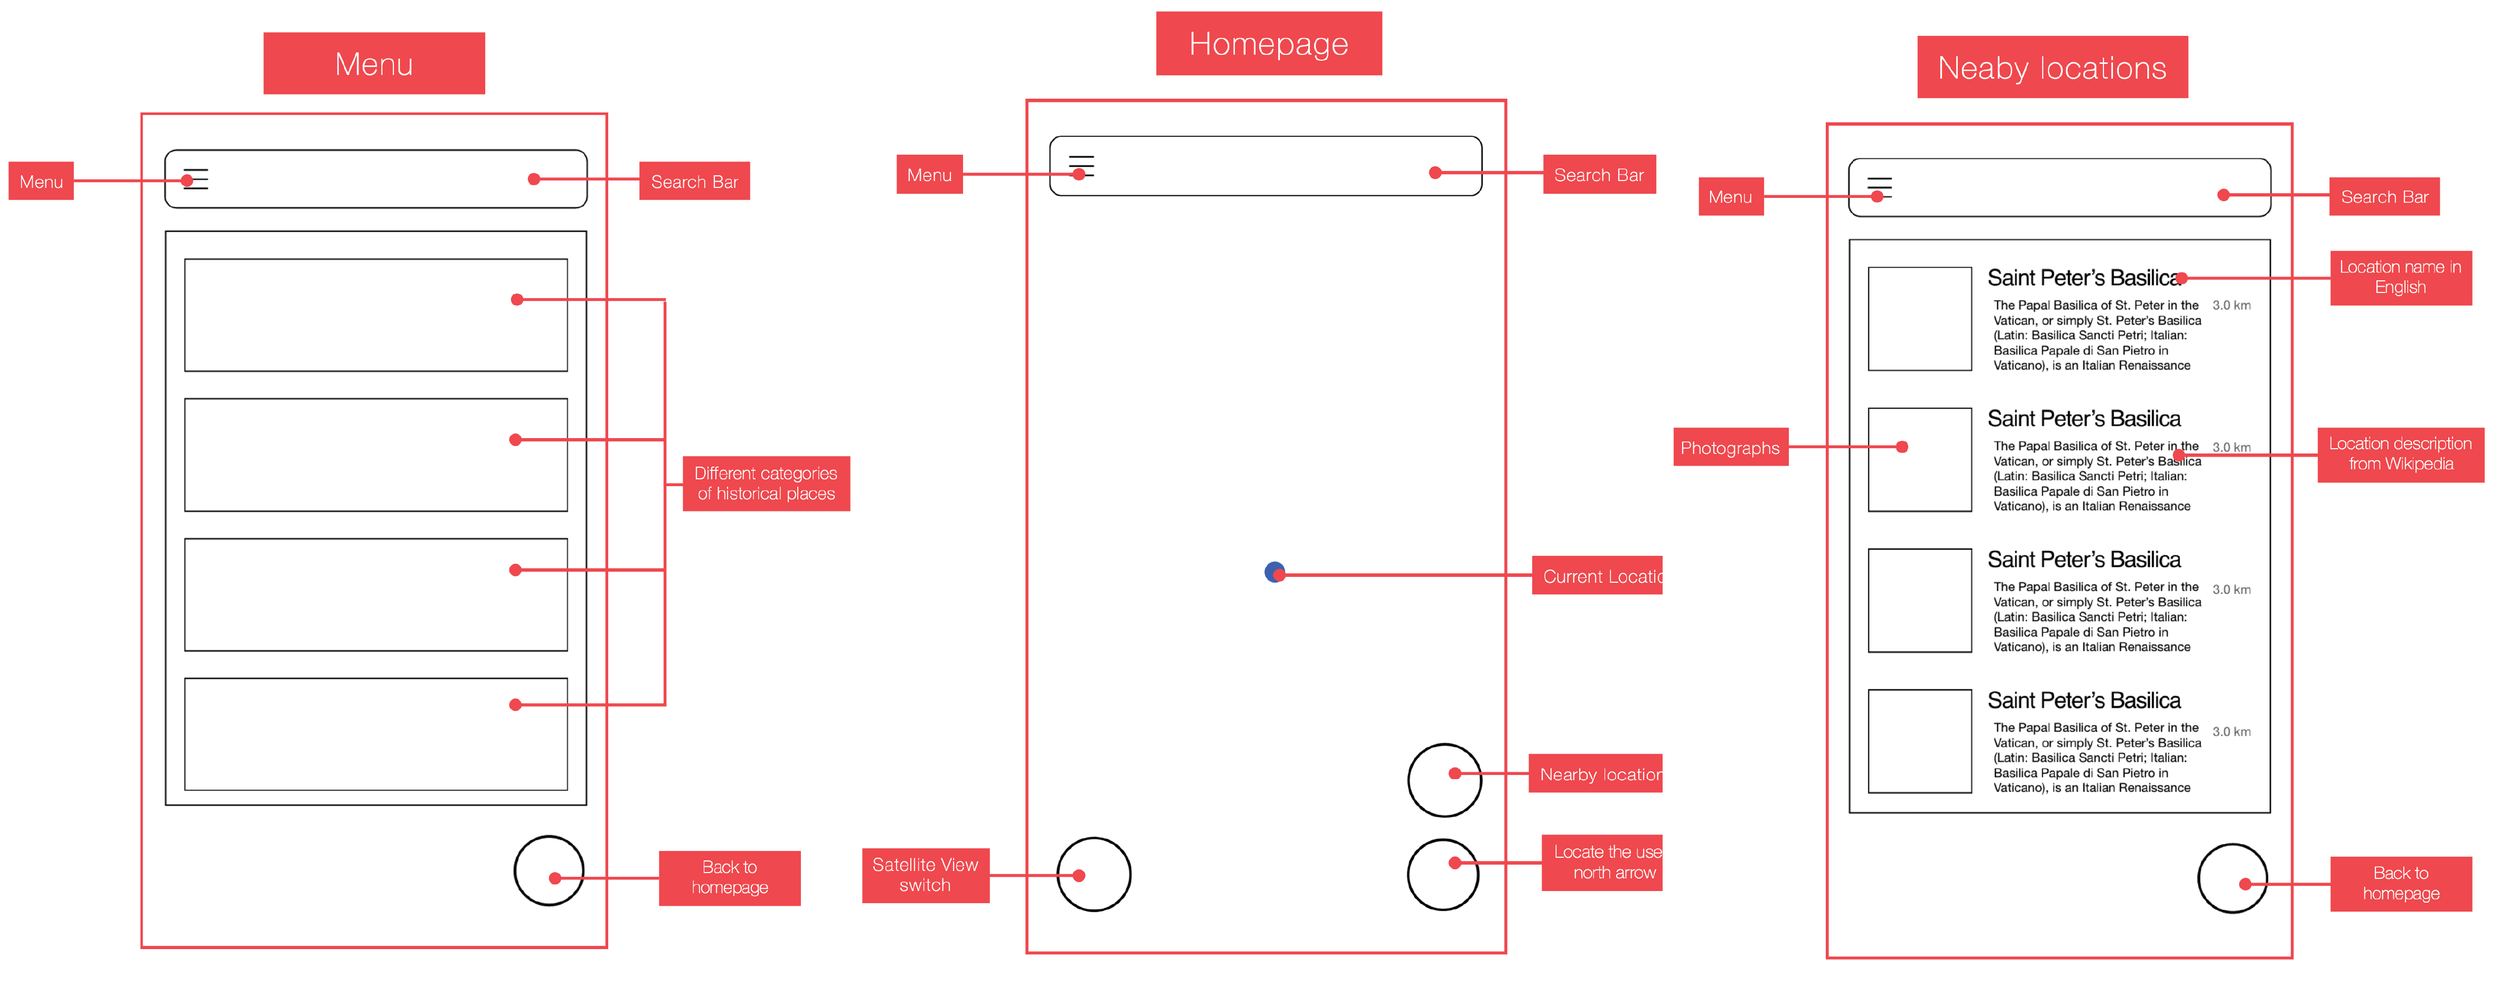 Homepage, Menu, Nearby locations wireframes